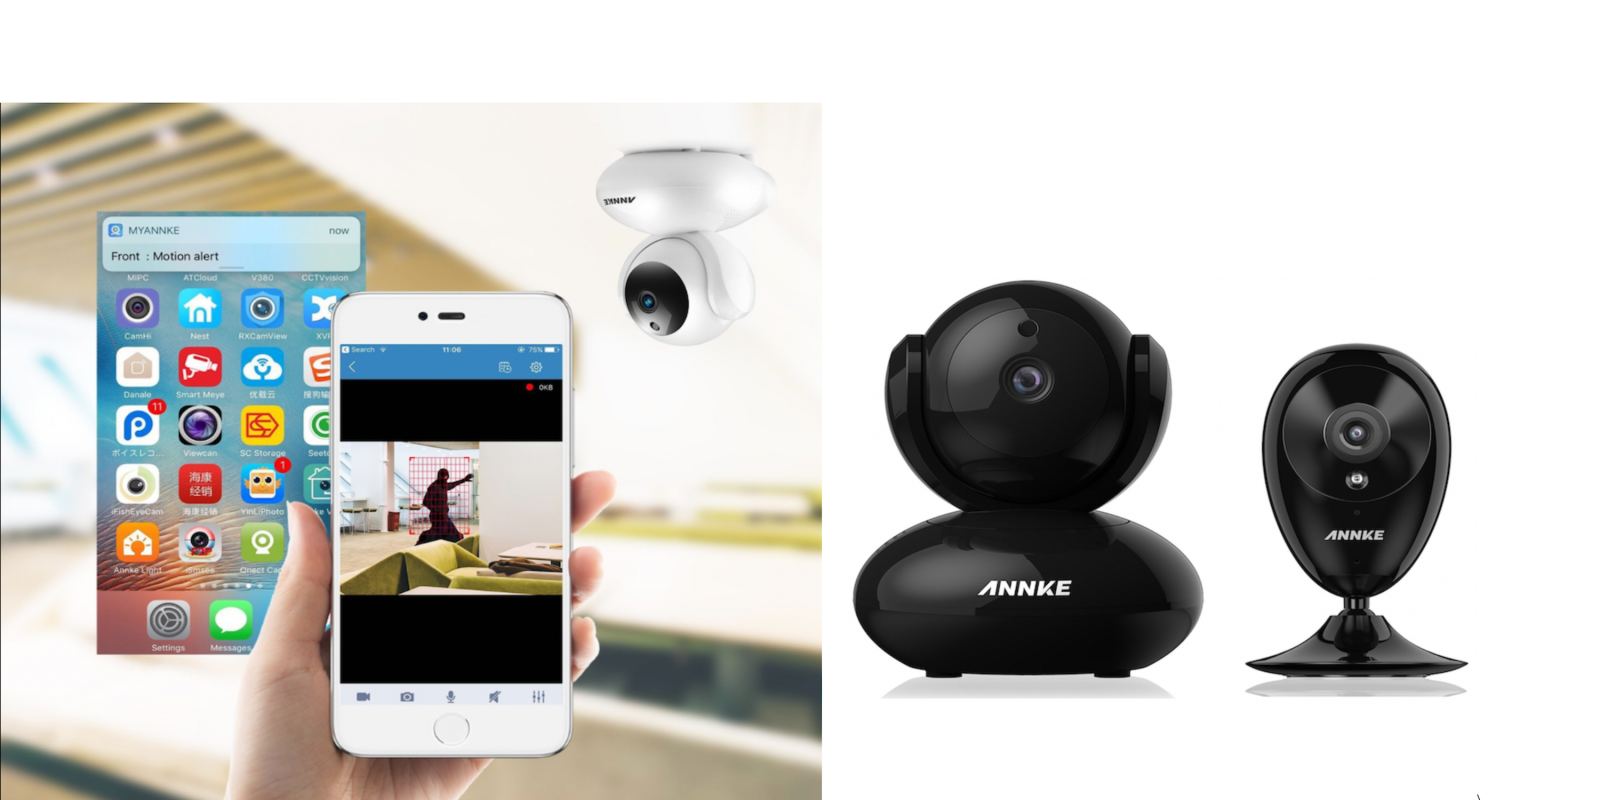 Grab Annke's 1080p wireless IP security cameras 35% off for